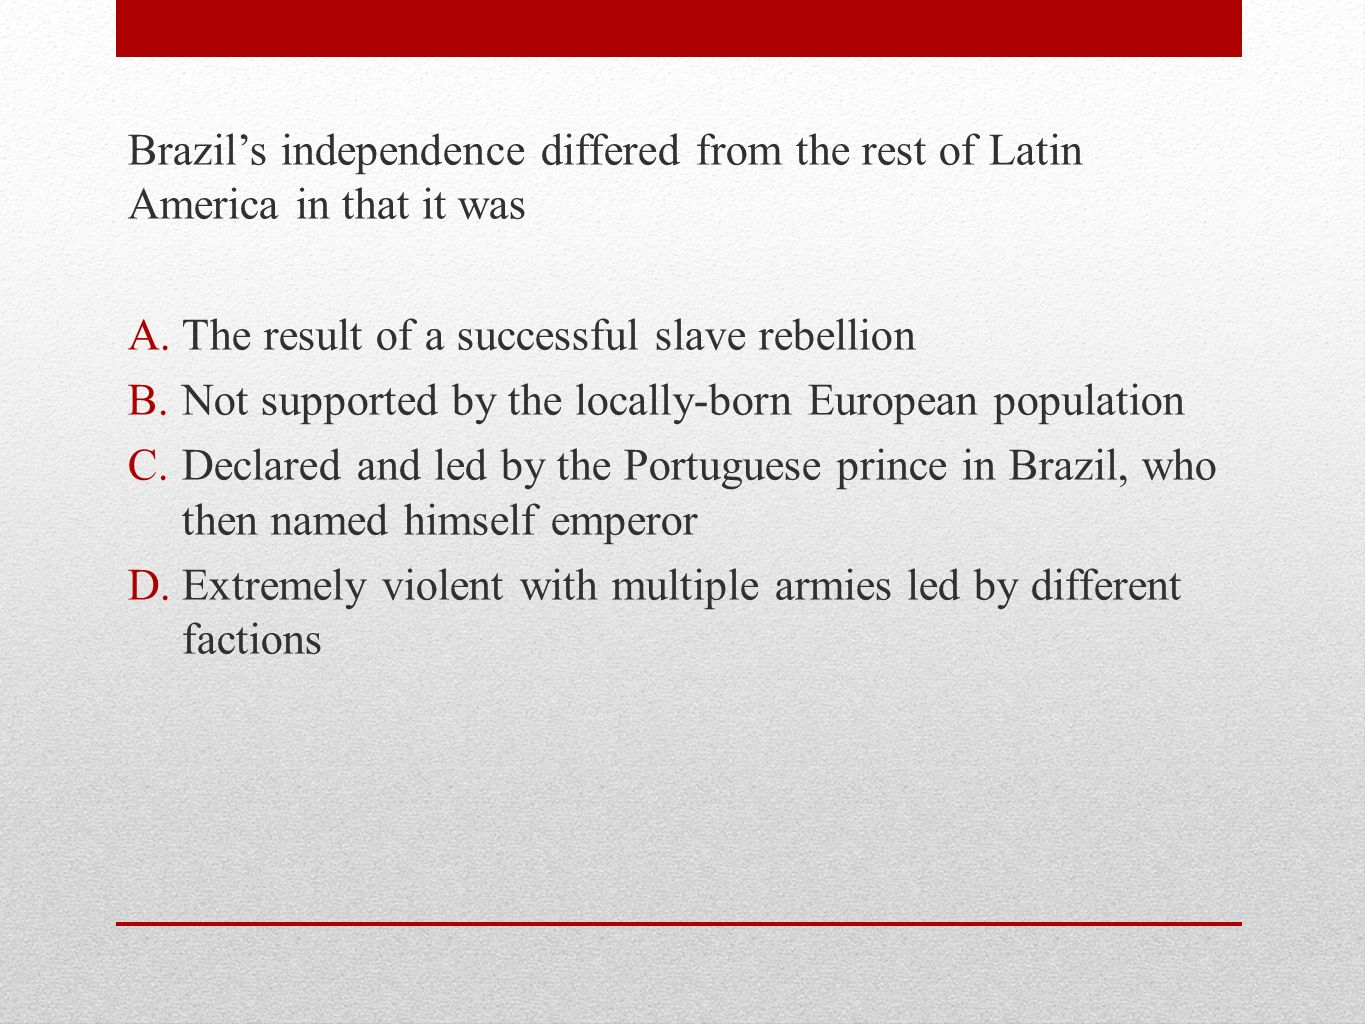 Brazil's independence differed from the rest of Latin America in that it was